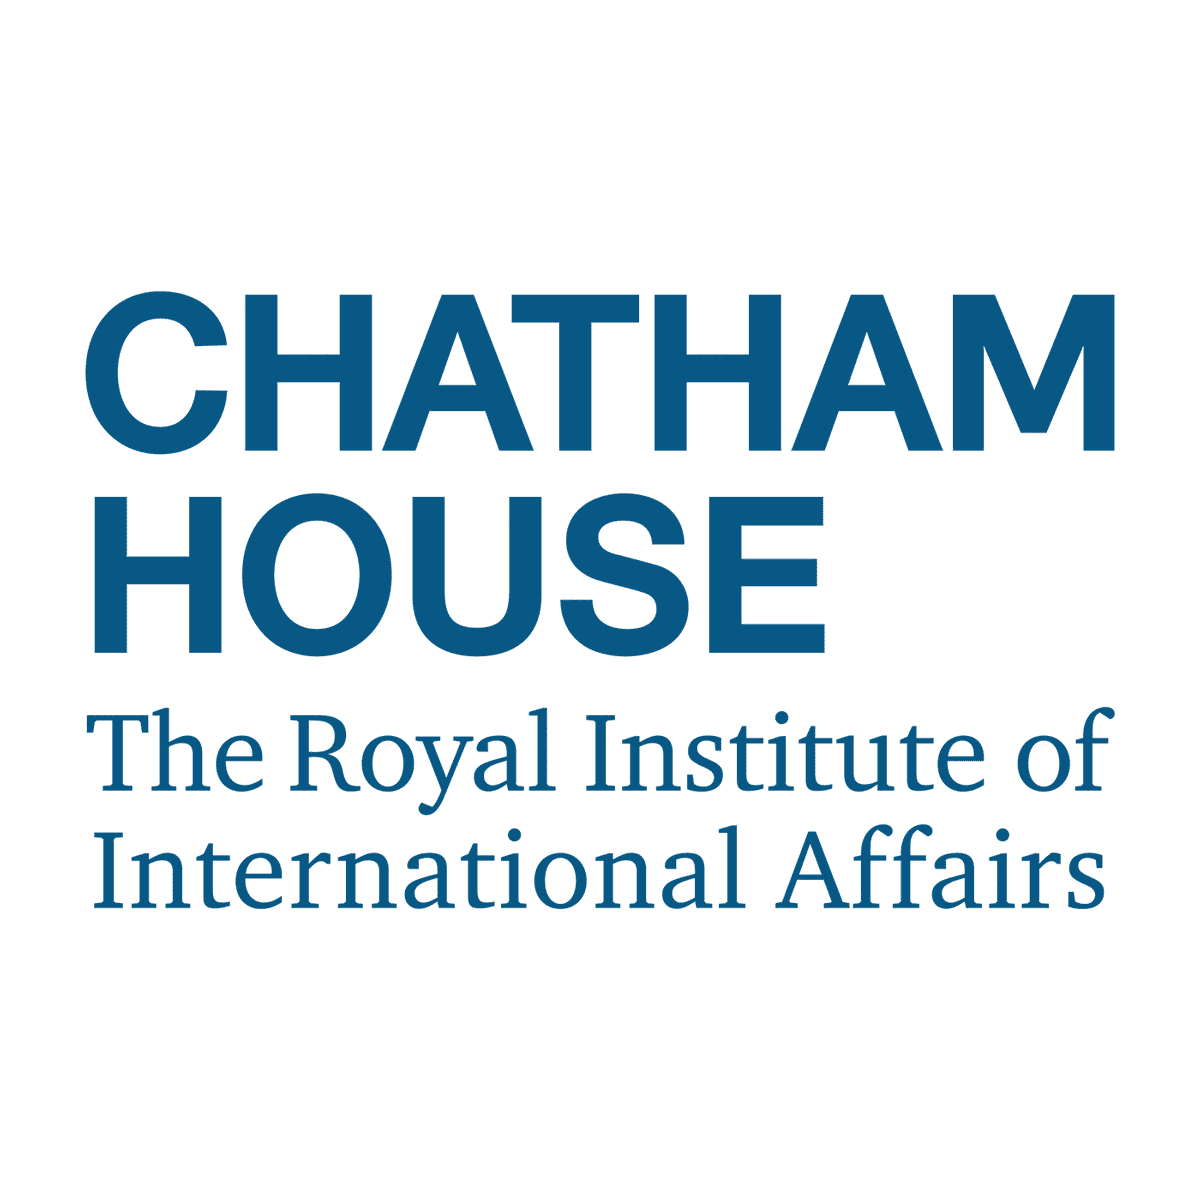 Chatham House - The Royal Institute of International Affairs on Market of Expert Networks